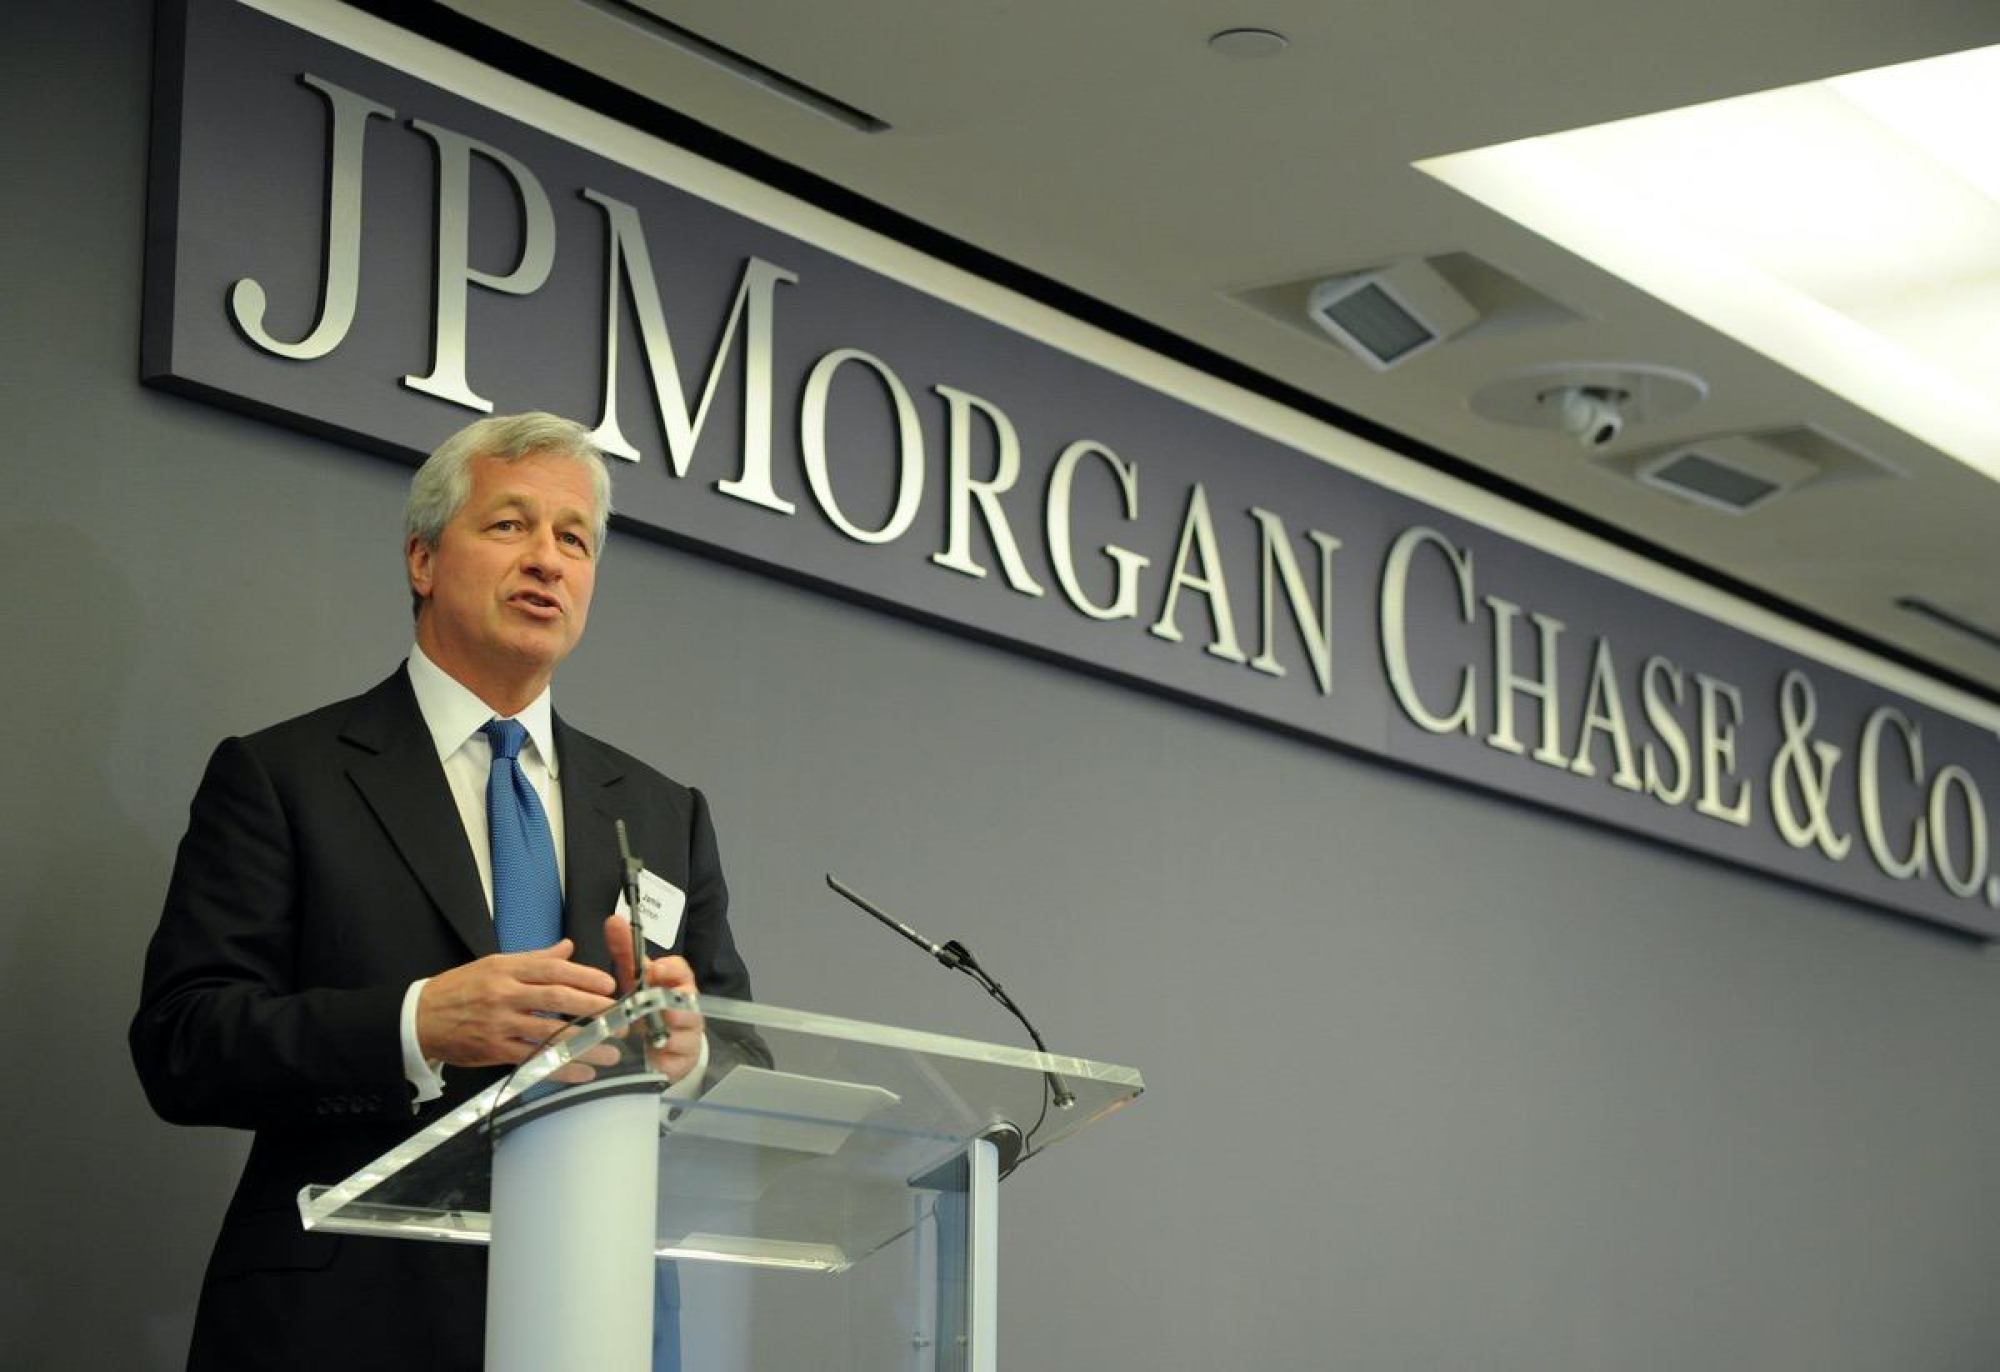 Jamie Dimon, JP Morgan & Chase Co. Chairman and CEO Monday, June 23, 2014, at JPMorgan Chase Headquarters in New York. (Photo by Diane Bondareff/Invision for JPMorgan Chase/AP Images)